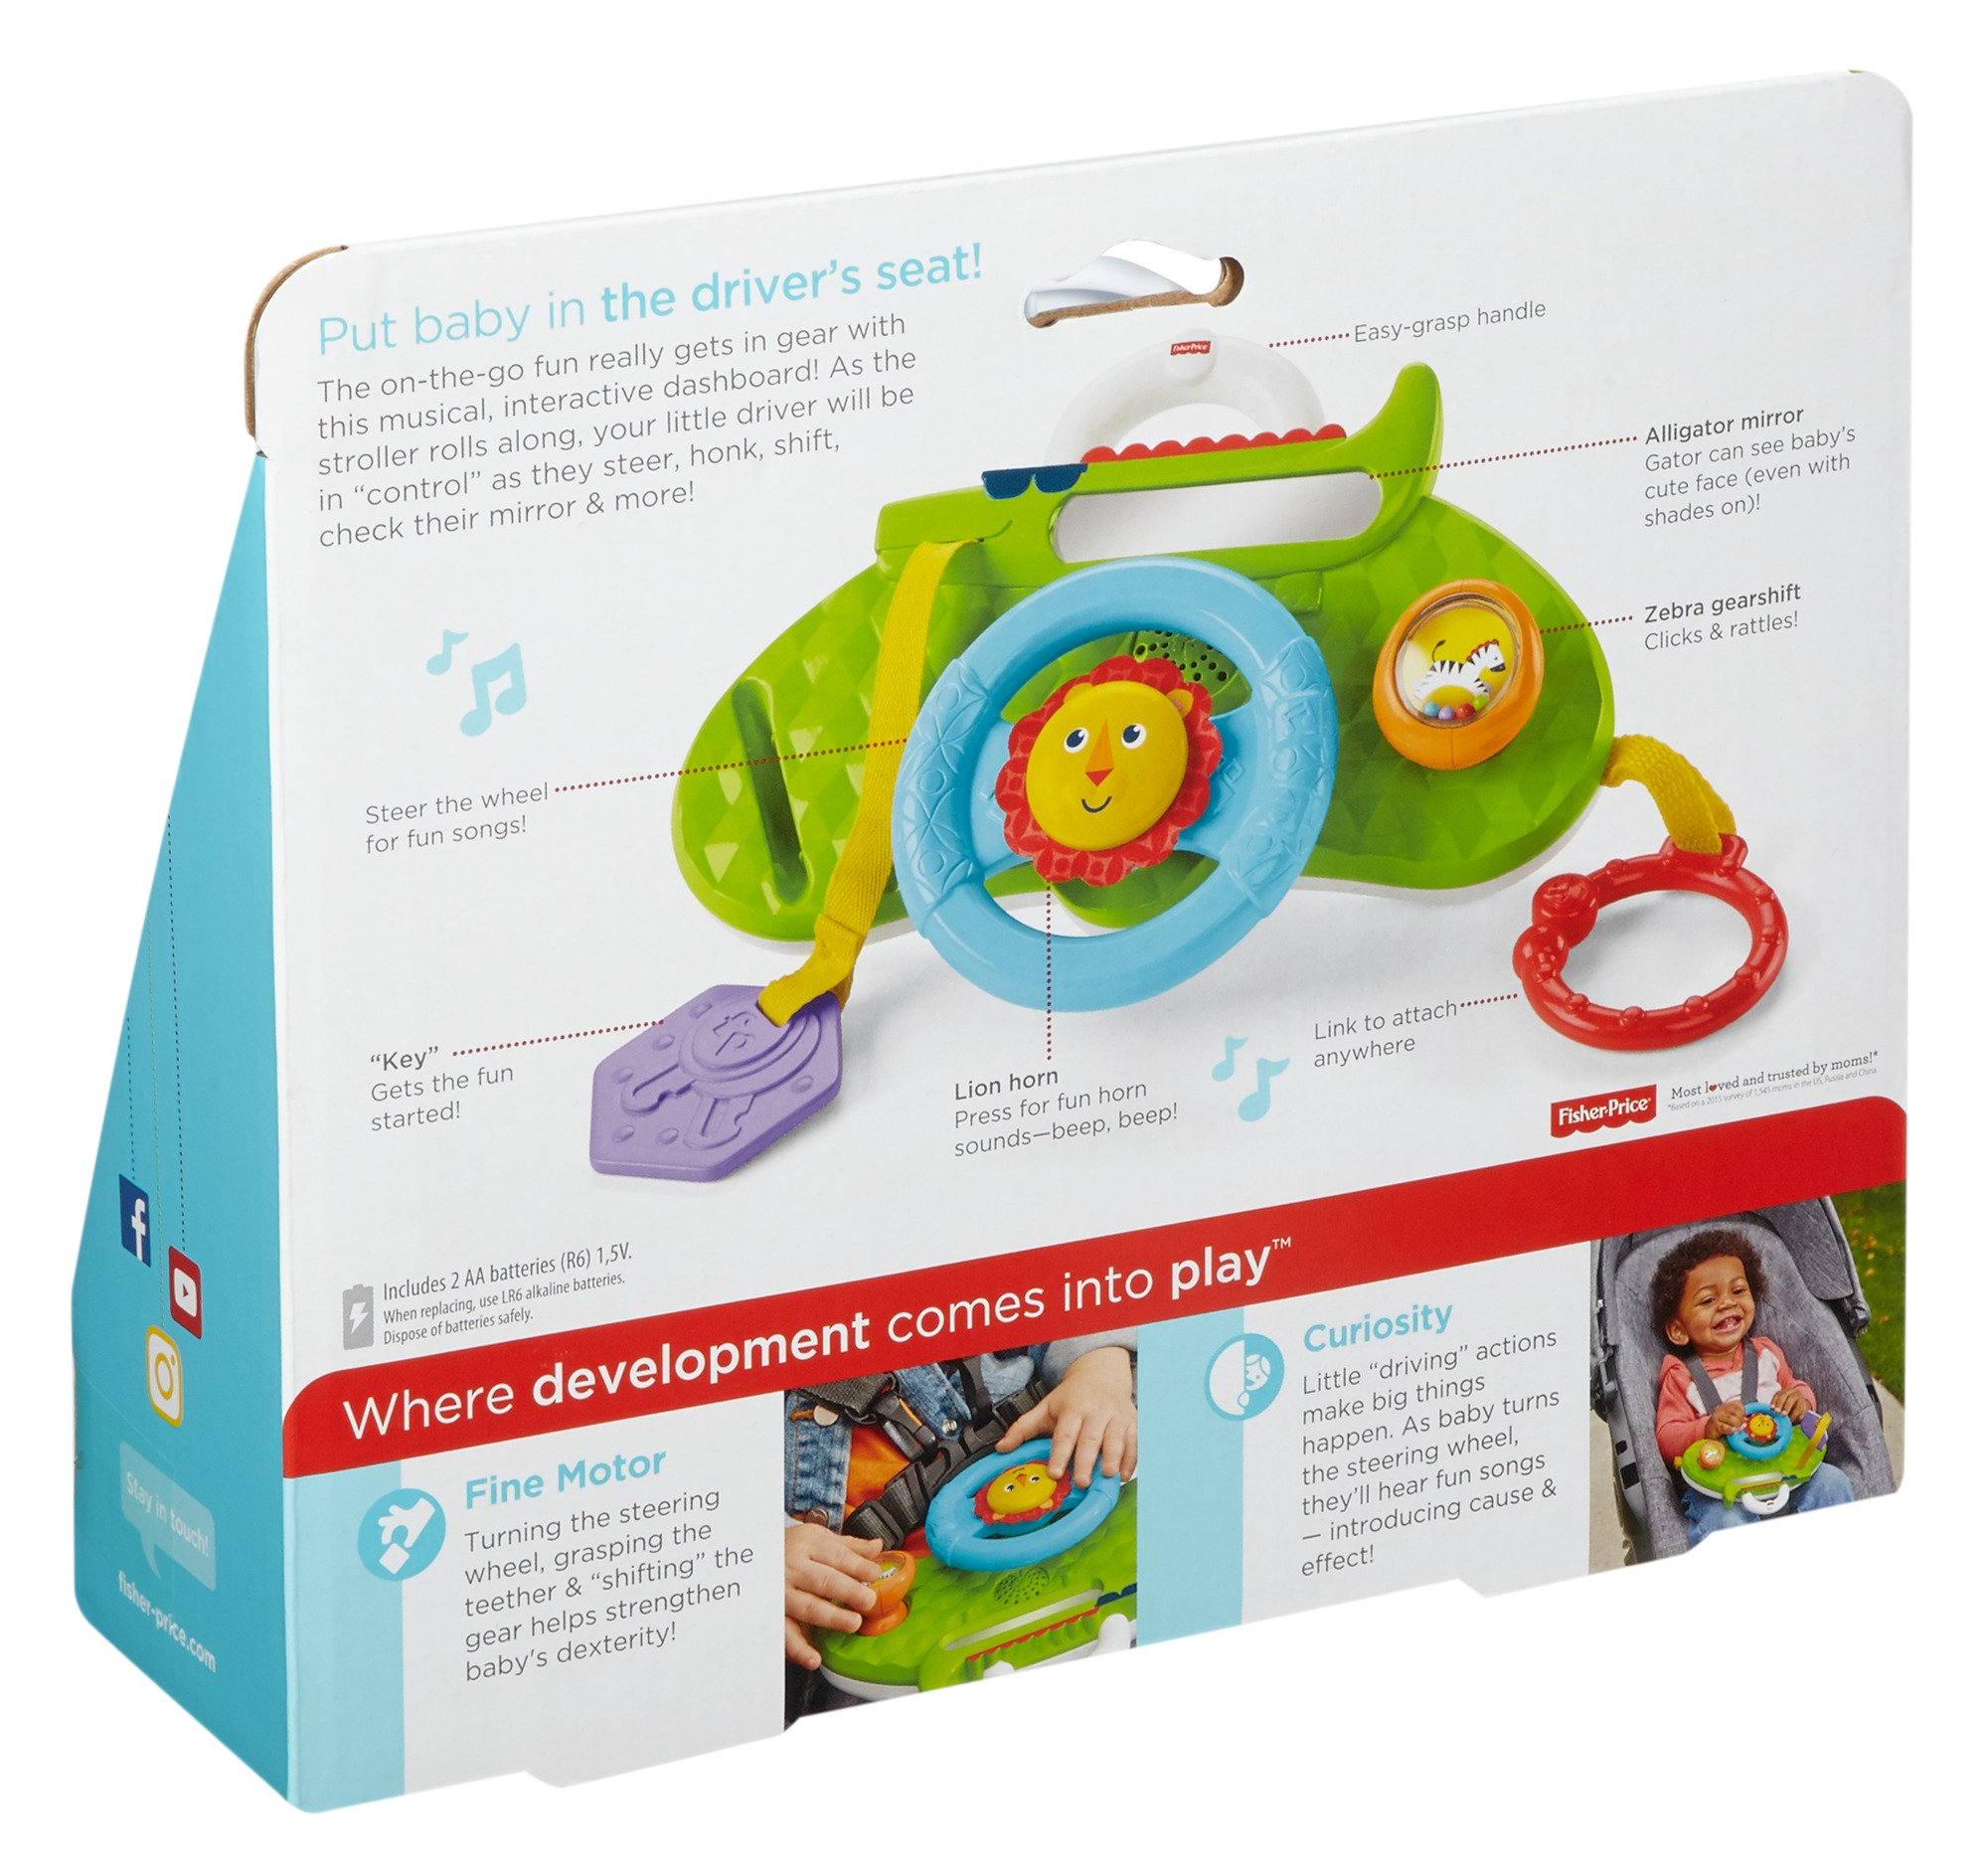 Fisher-Price Rolling and Strolling Dashboard, New-born Activity Toy with Music Sounds Fisher-Price  Attaches to stroller for playtime on the go  Turn the lion steering wheel to hear short songs  Push the lion's face for silly sound effects (Beep beep!) 8